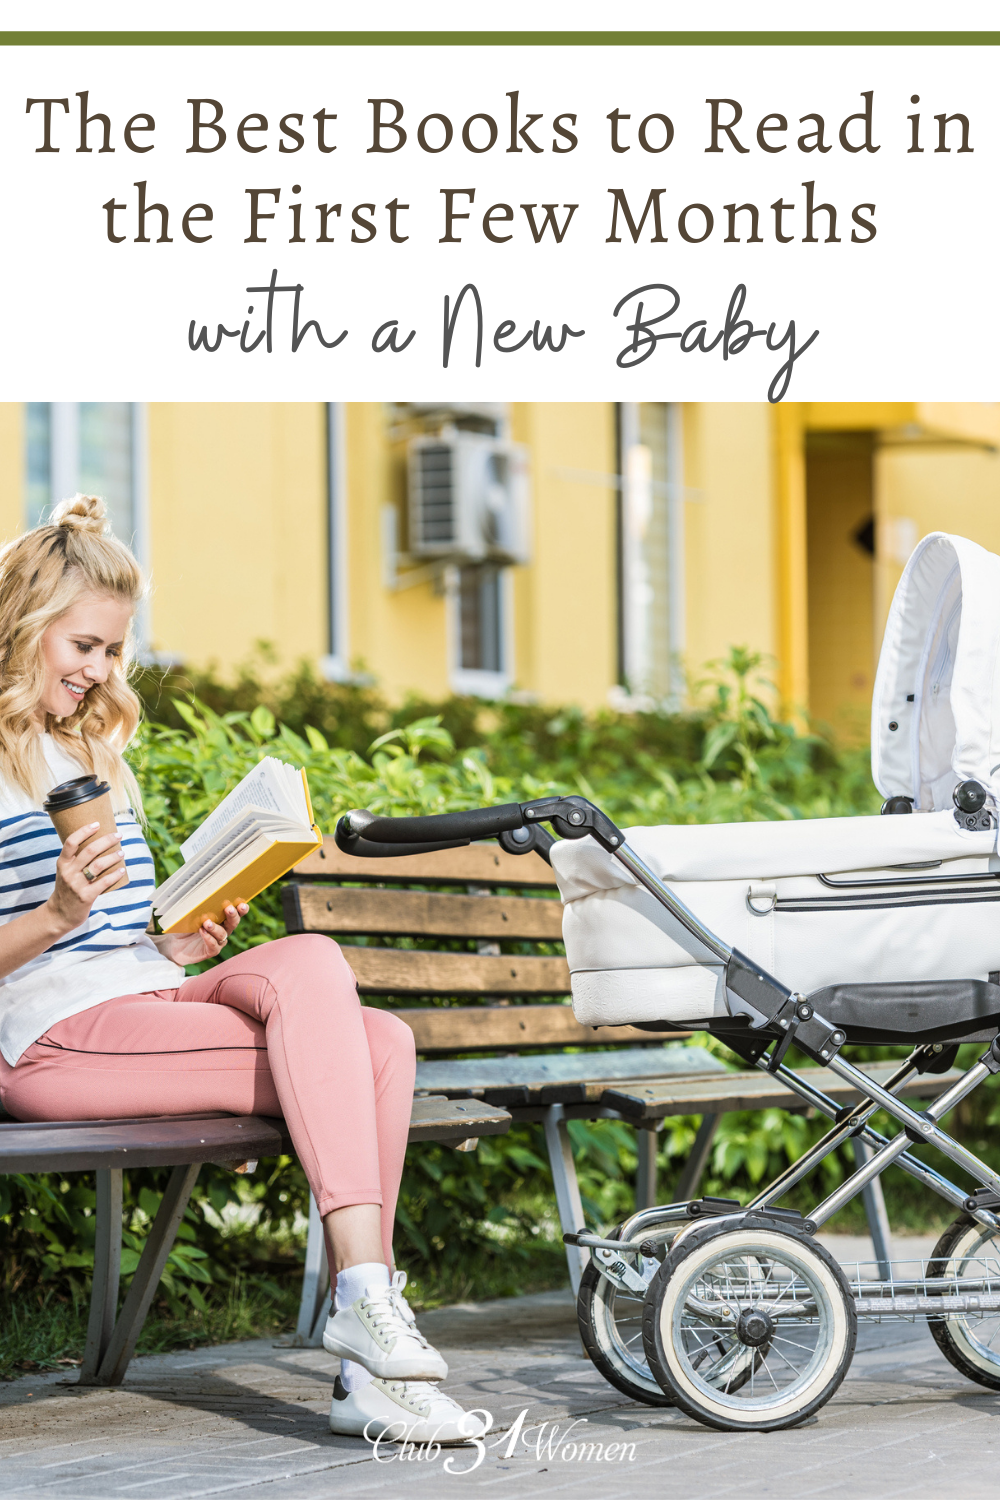 Life with a new baby can be overwhelming but also require slowing down as you recover and care for your newborn. Here are some books to help! via @Club31Women